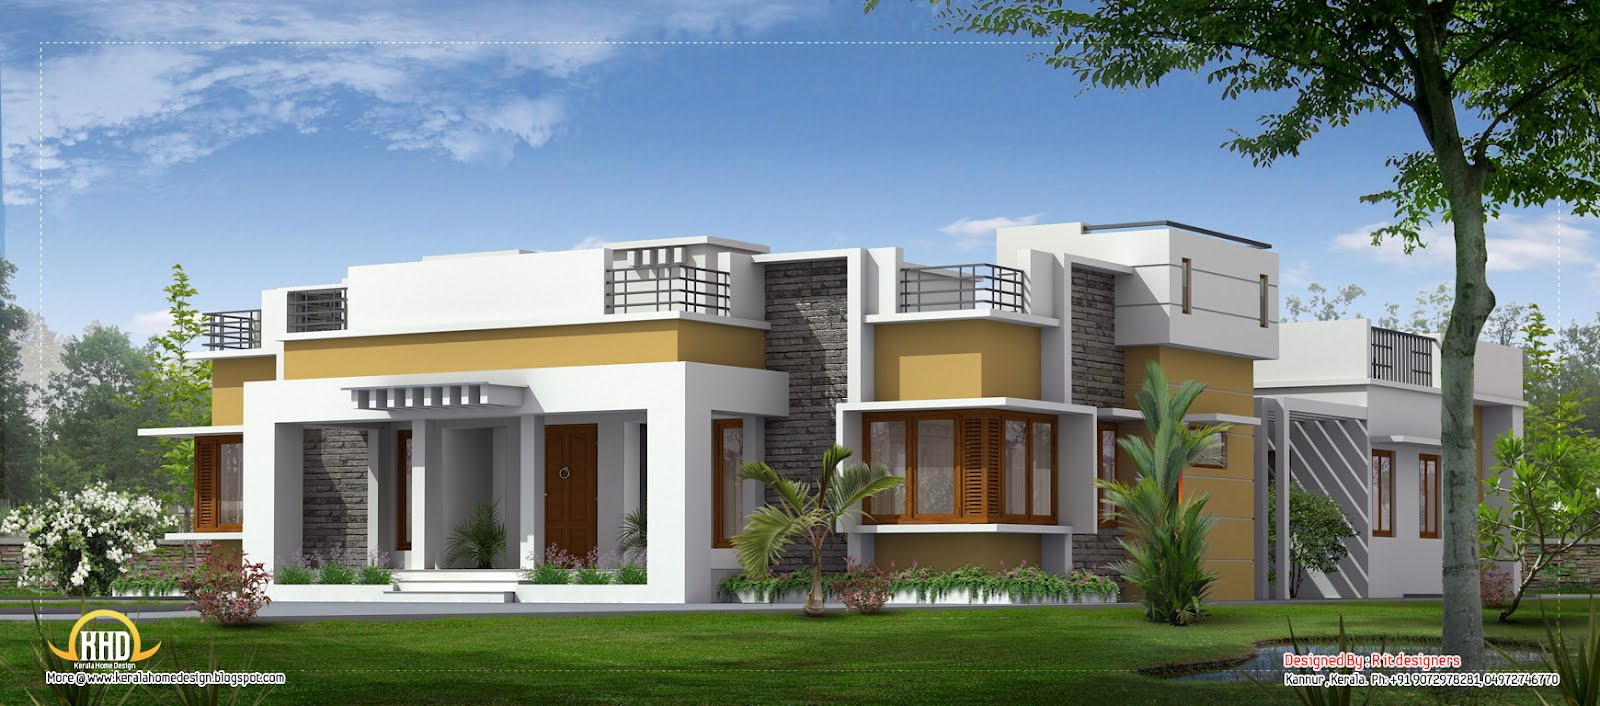 ... Single floor home - 2910 Sq. Ft. - Kerala home design and floor plans